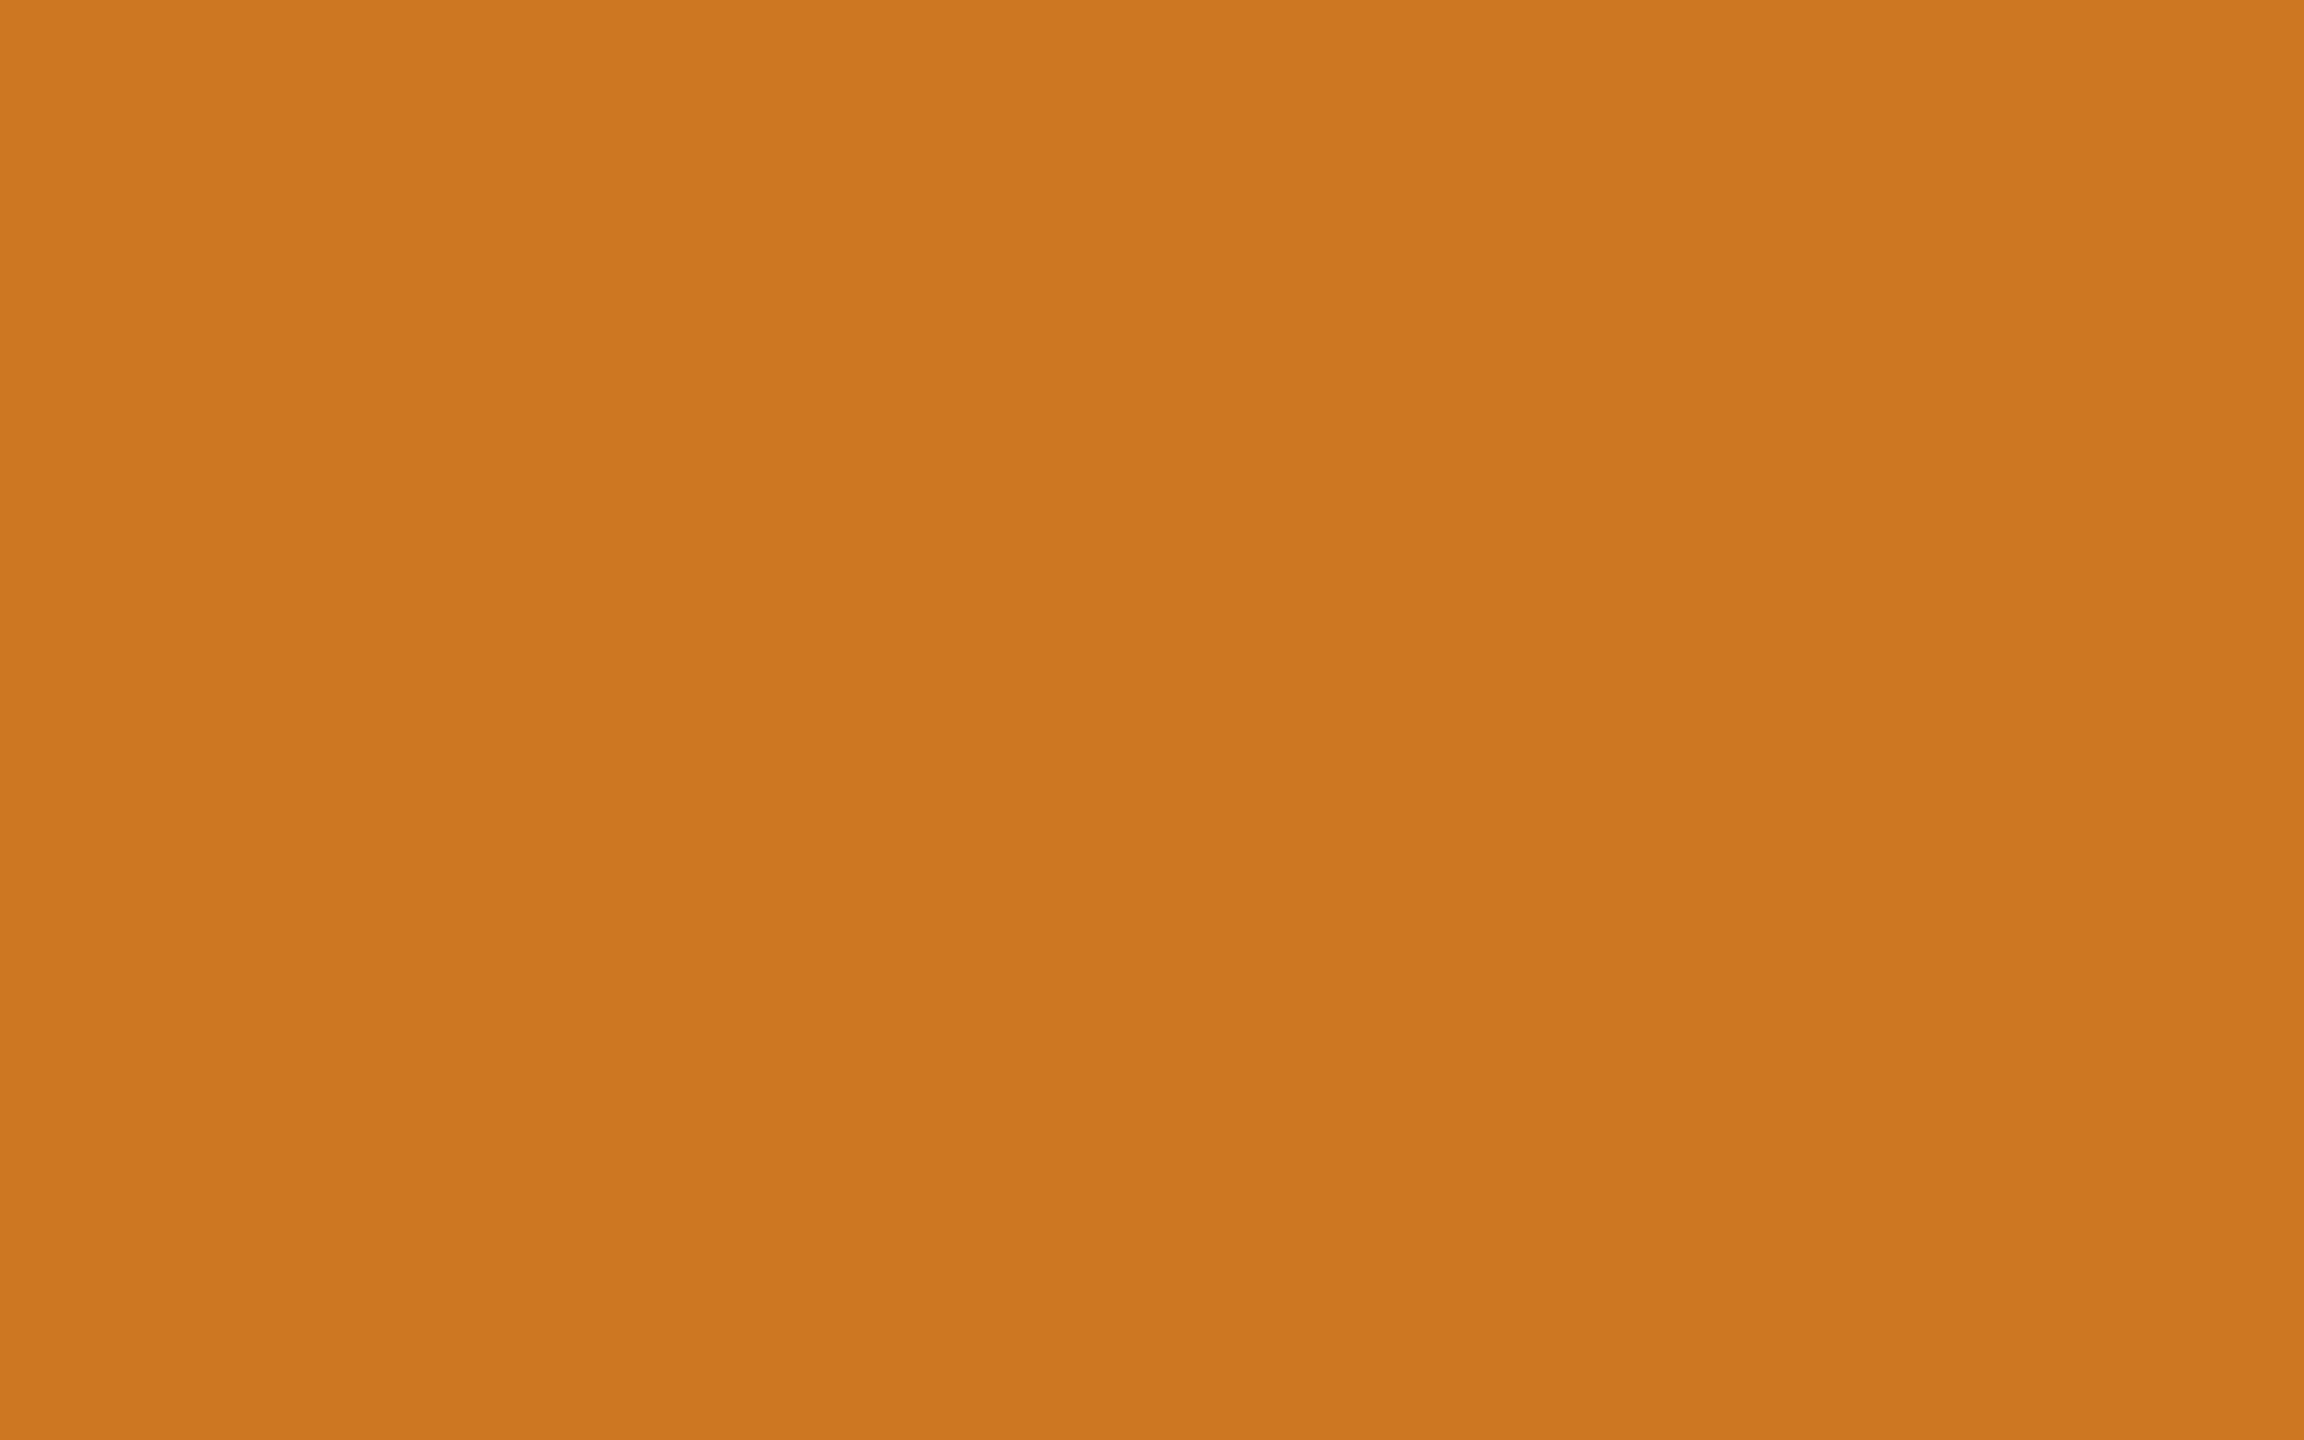 2304x1440 Ochre Solid Color Background